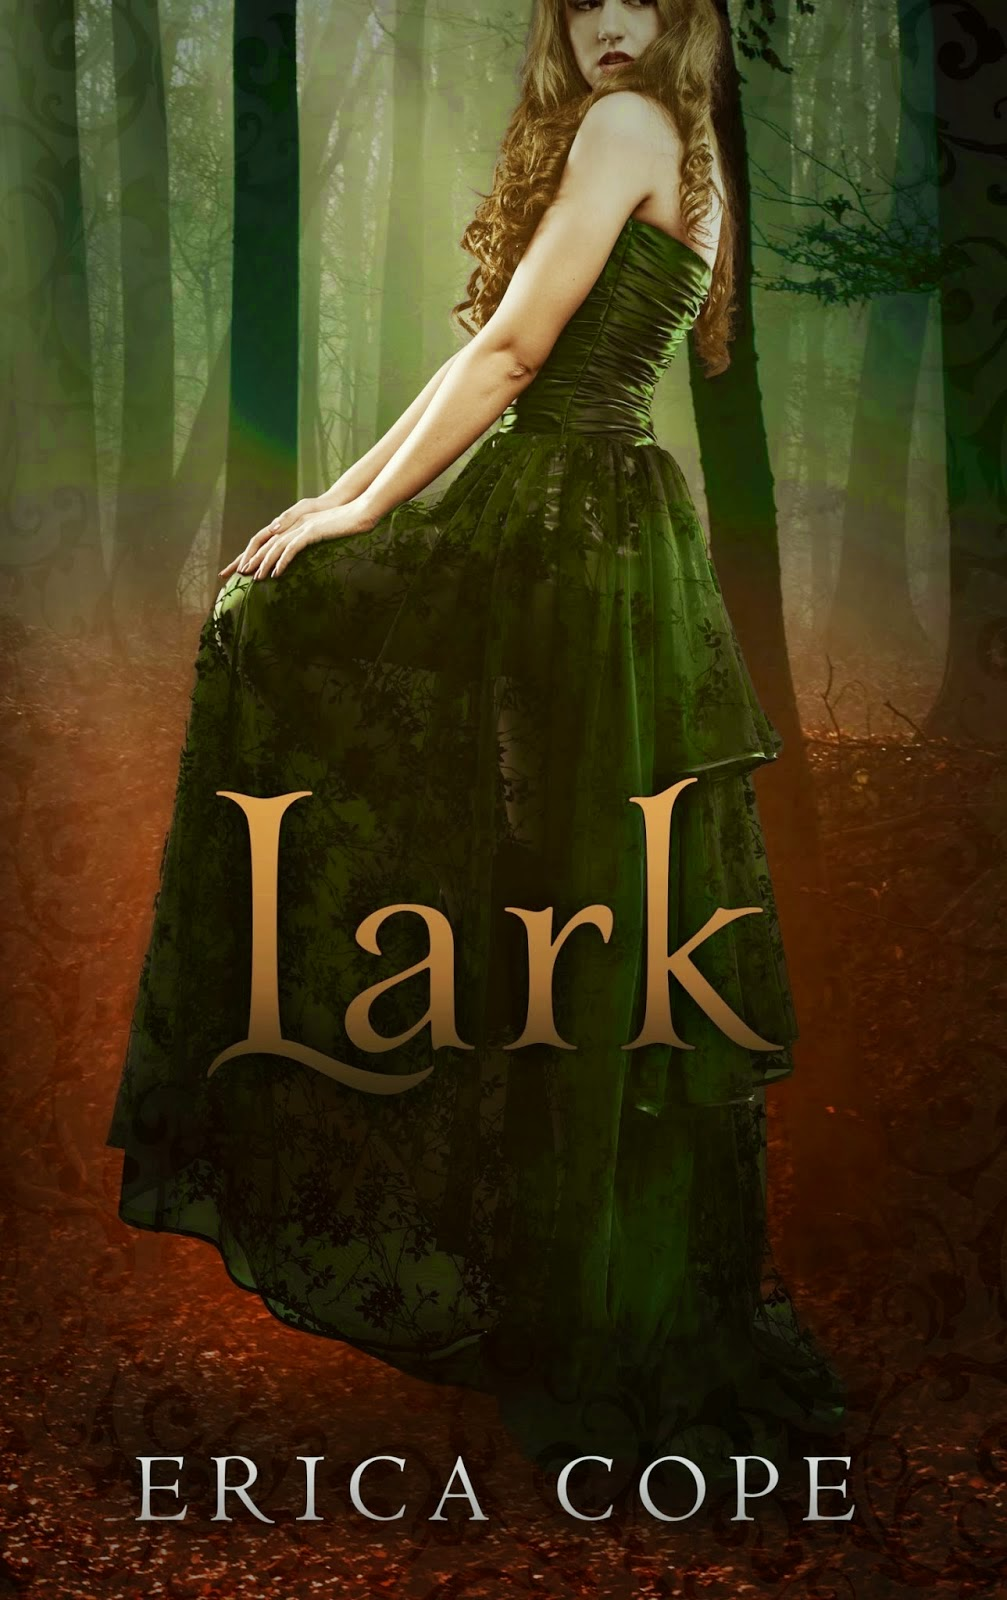 http://www.amazon.com/Lark-Erica-Cope-ebook/dp/B00BBPF13Y/ref=sr_1_1?ie=UTF8&qid=1411212995&sr=8-1&keywords=lark+erica+cope